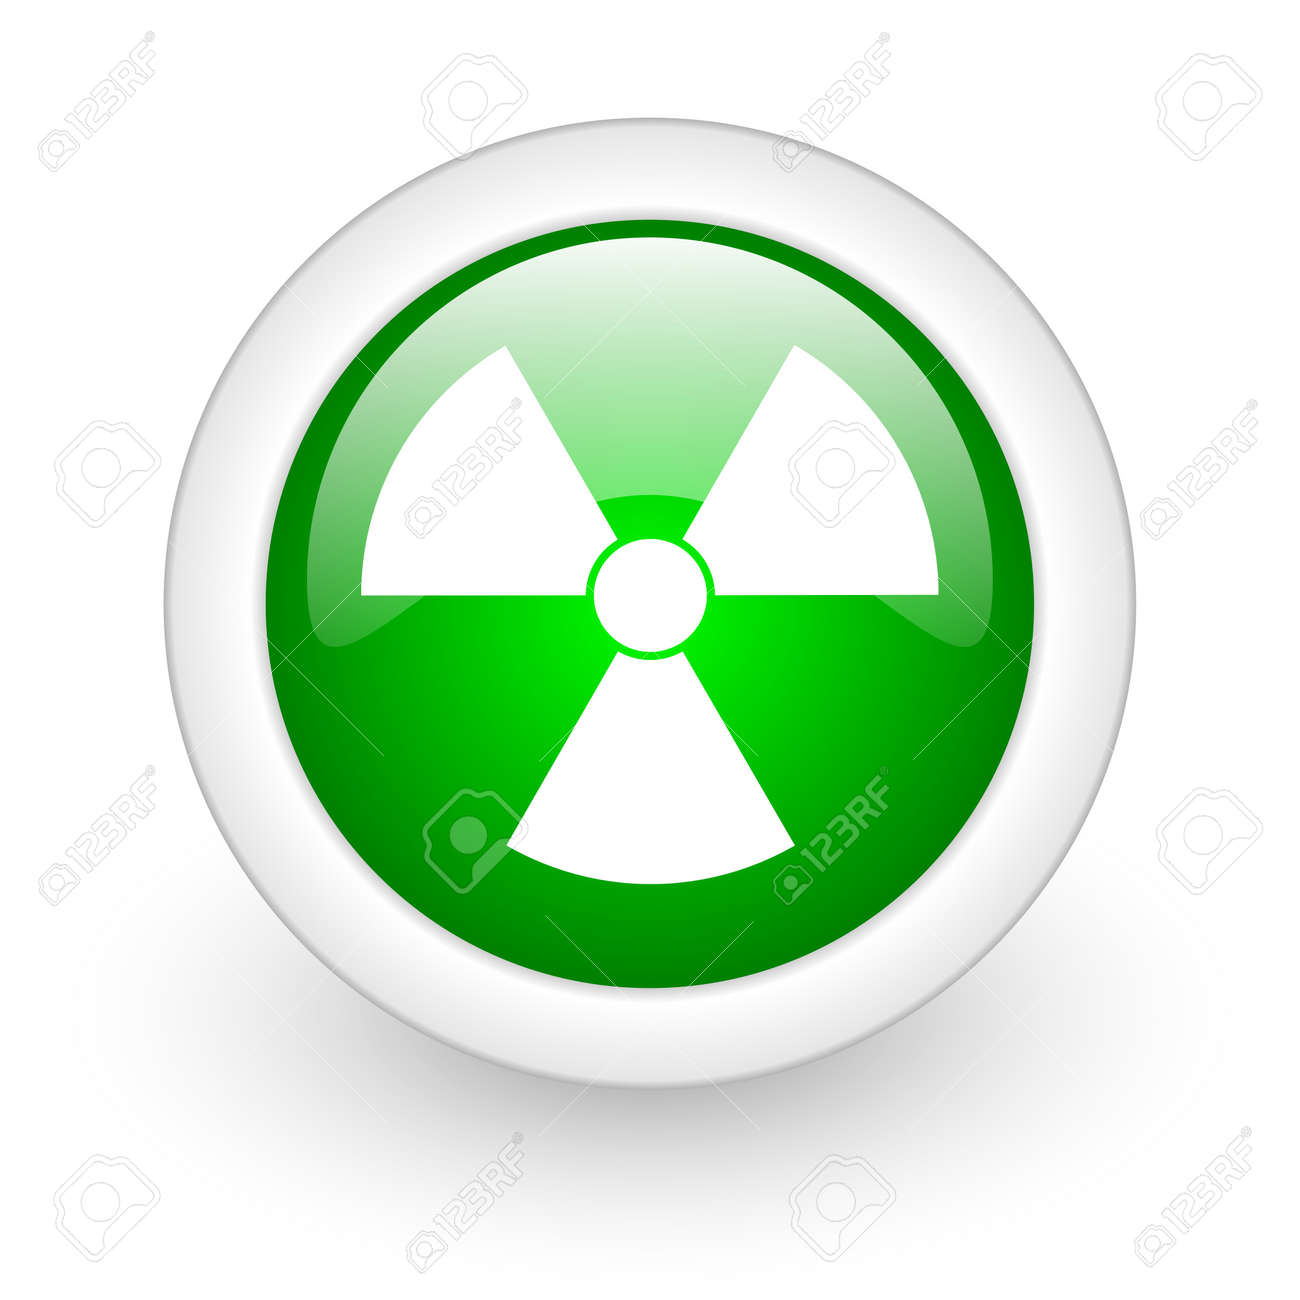 radiation green circle glossy web icon on white background Stock Photo - 17864693